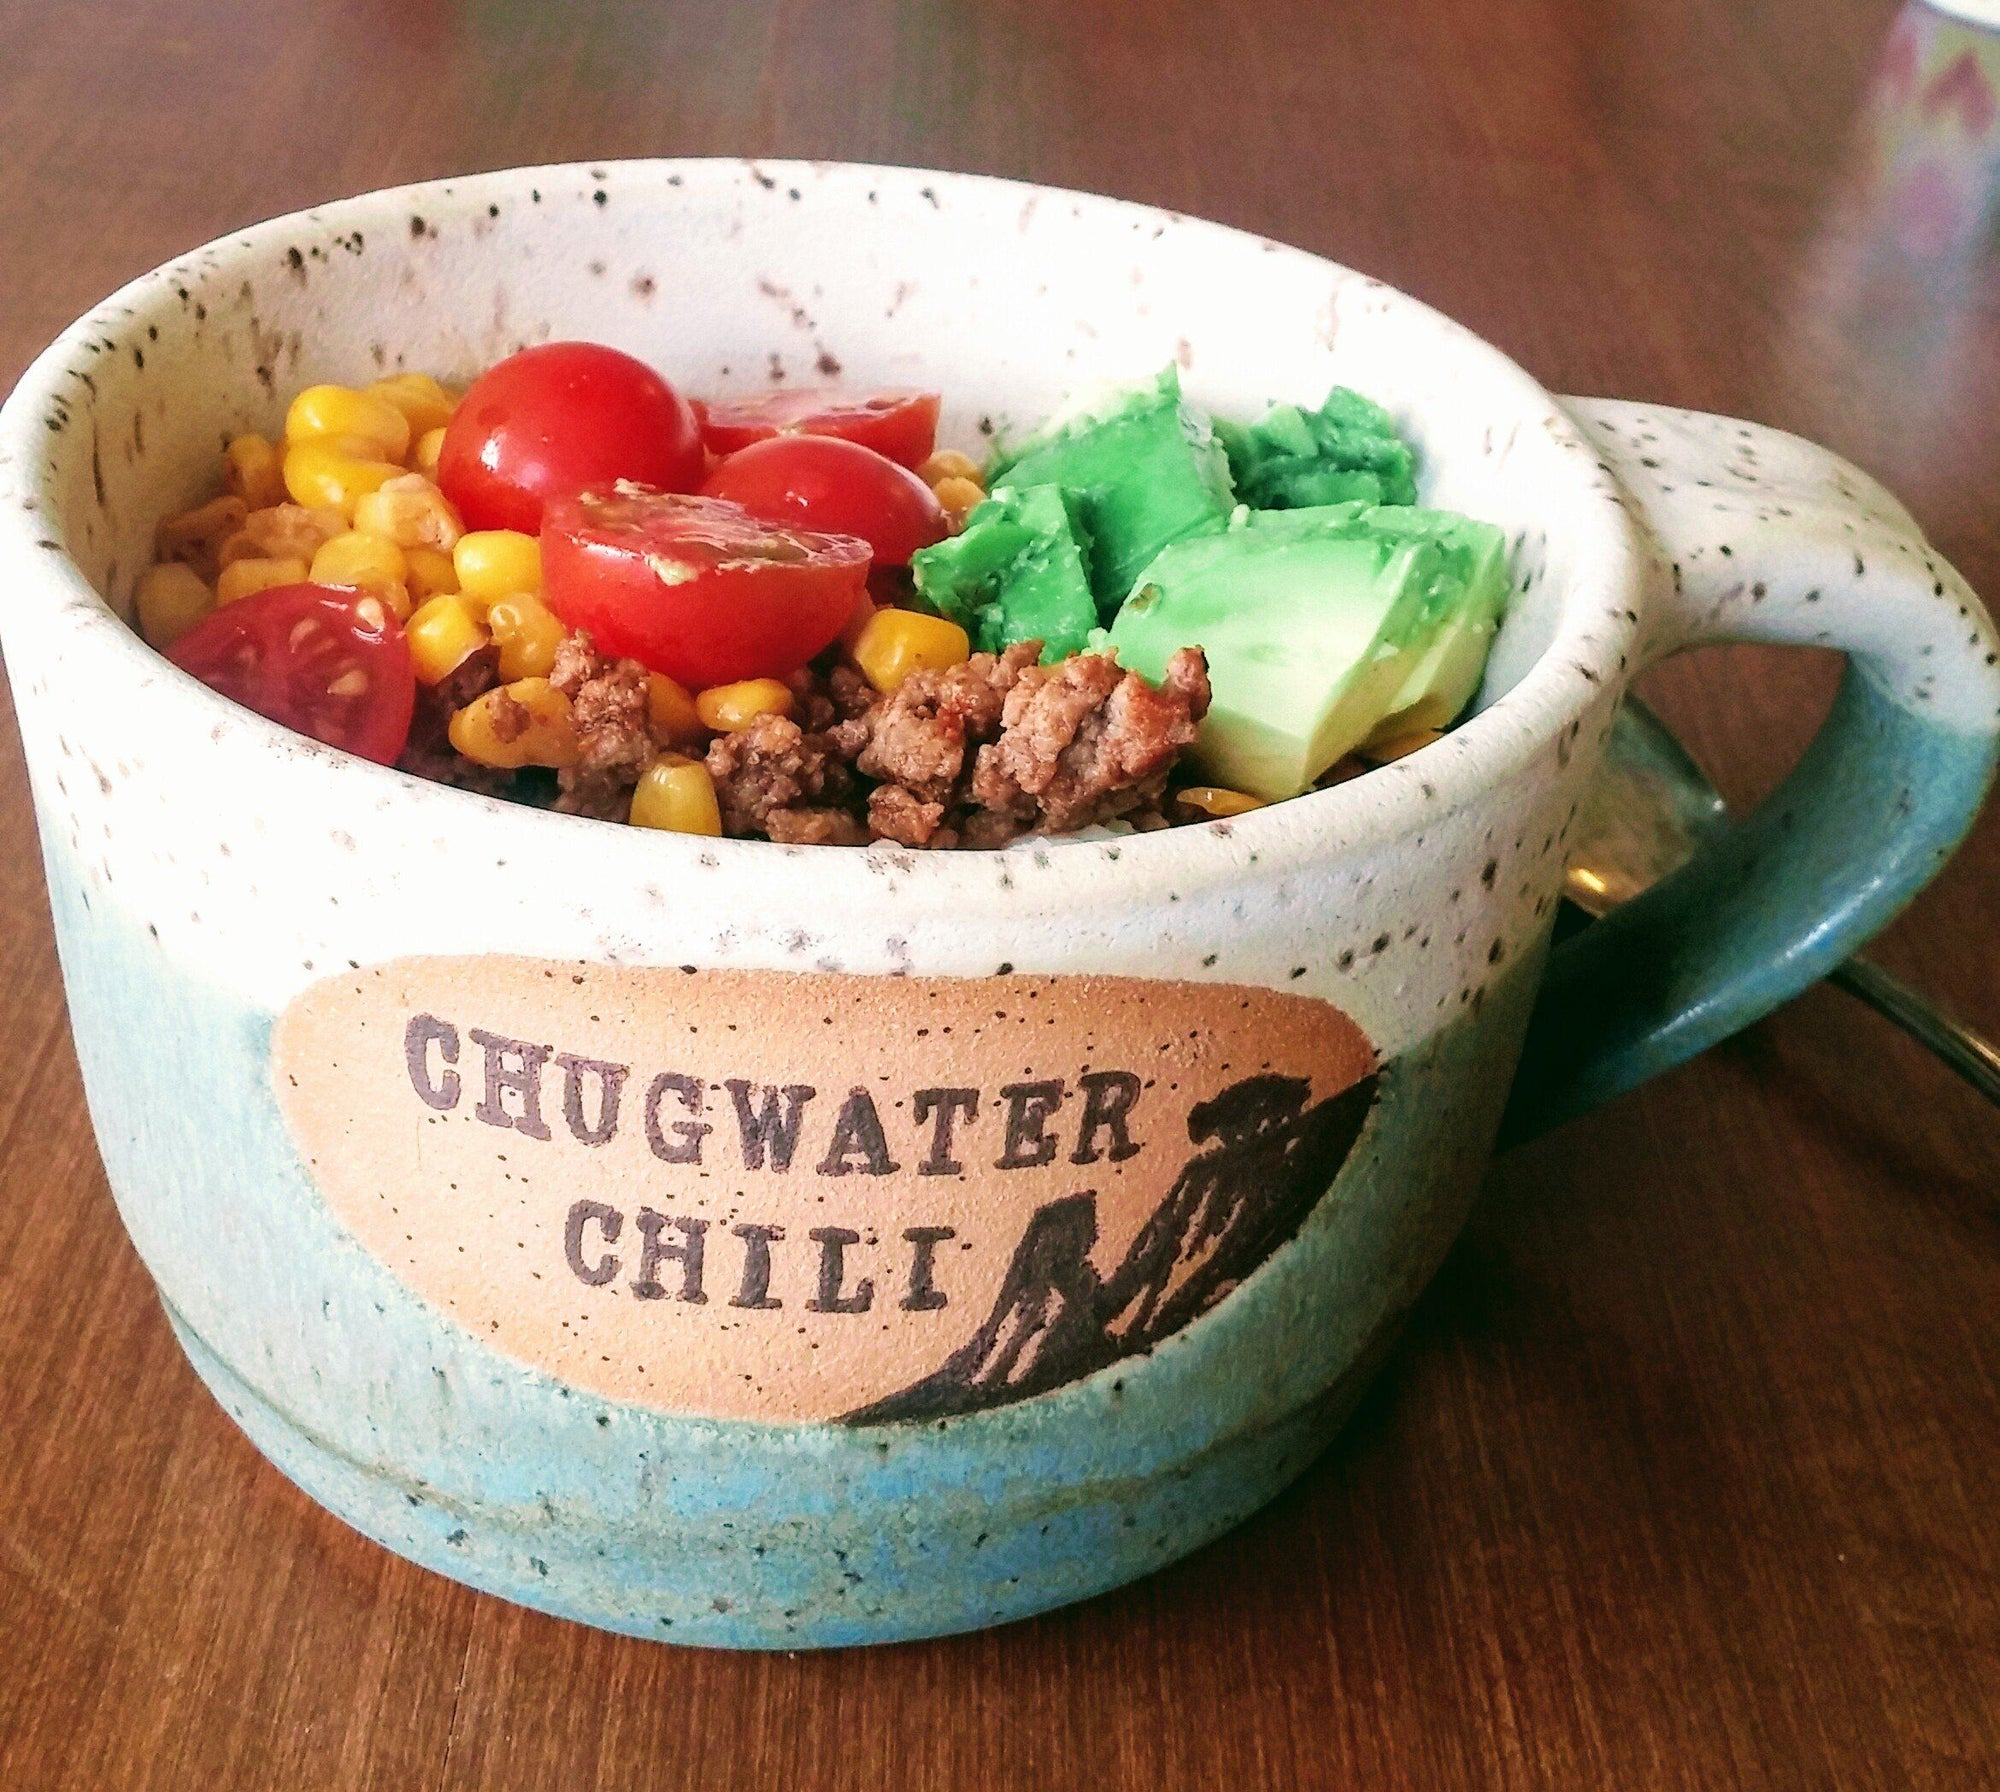 Chugwater Chili Taco Bowl